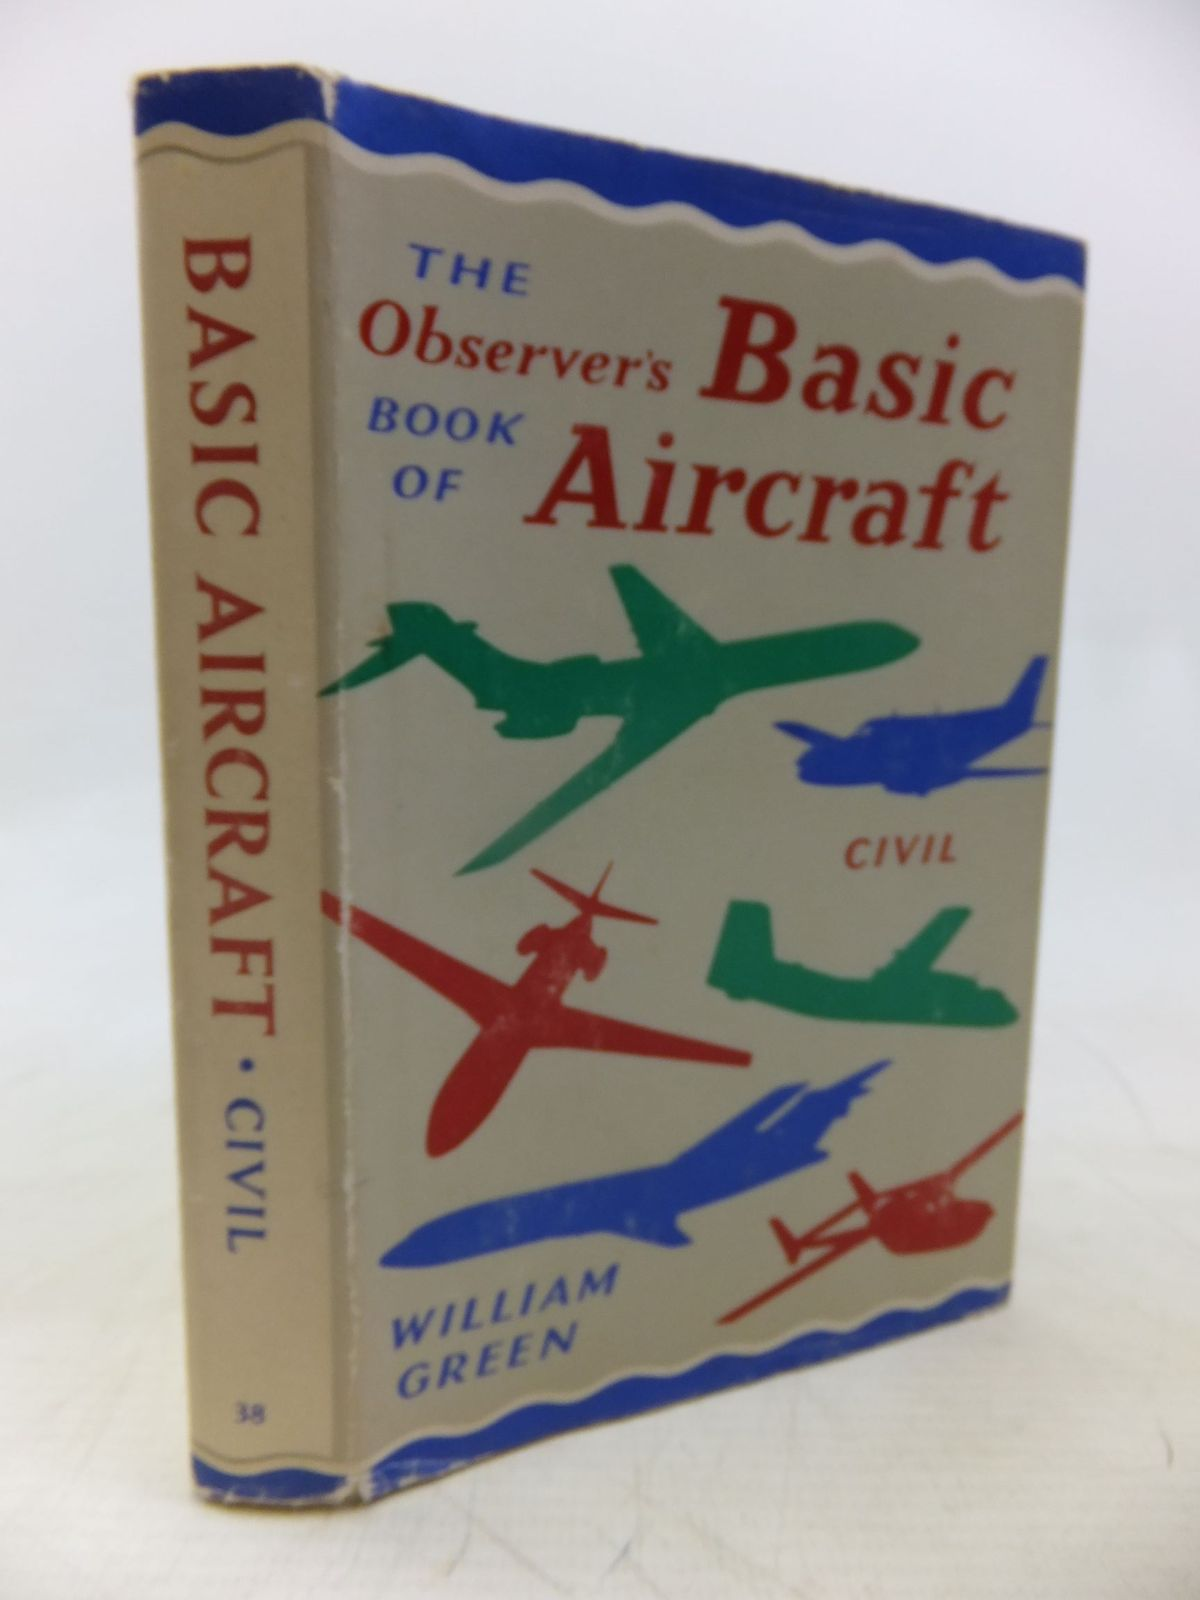 Photo of THE OBSERVER'S BOOK OF BASIC AIRCRAFT: CIVIL written by Green, William illustrated by Punnett, Dennis published by Frederick Warne & Co Ltd. (STOCK CODE: 1713371)  for sale by Stella & Rose's Books